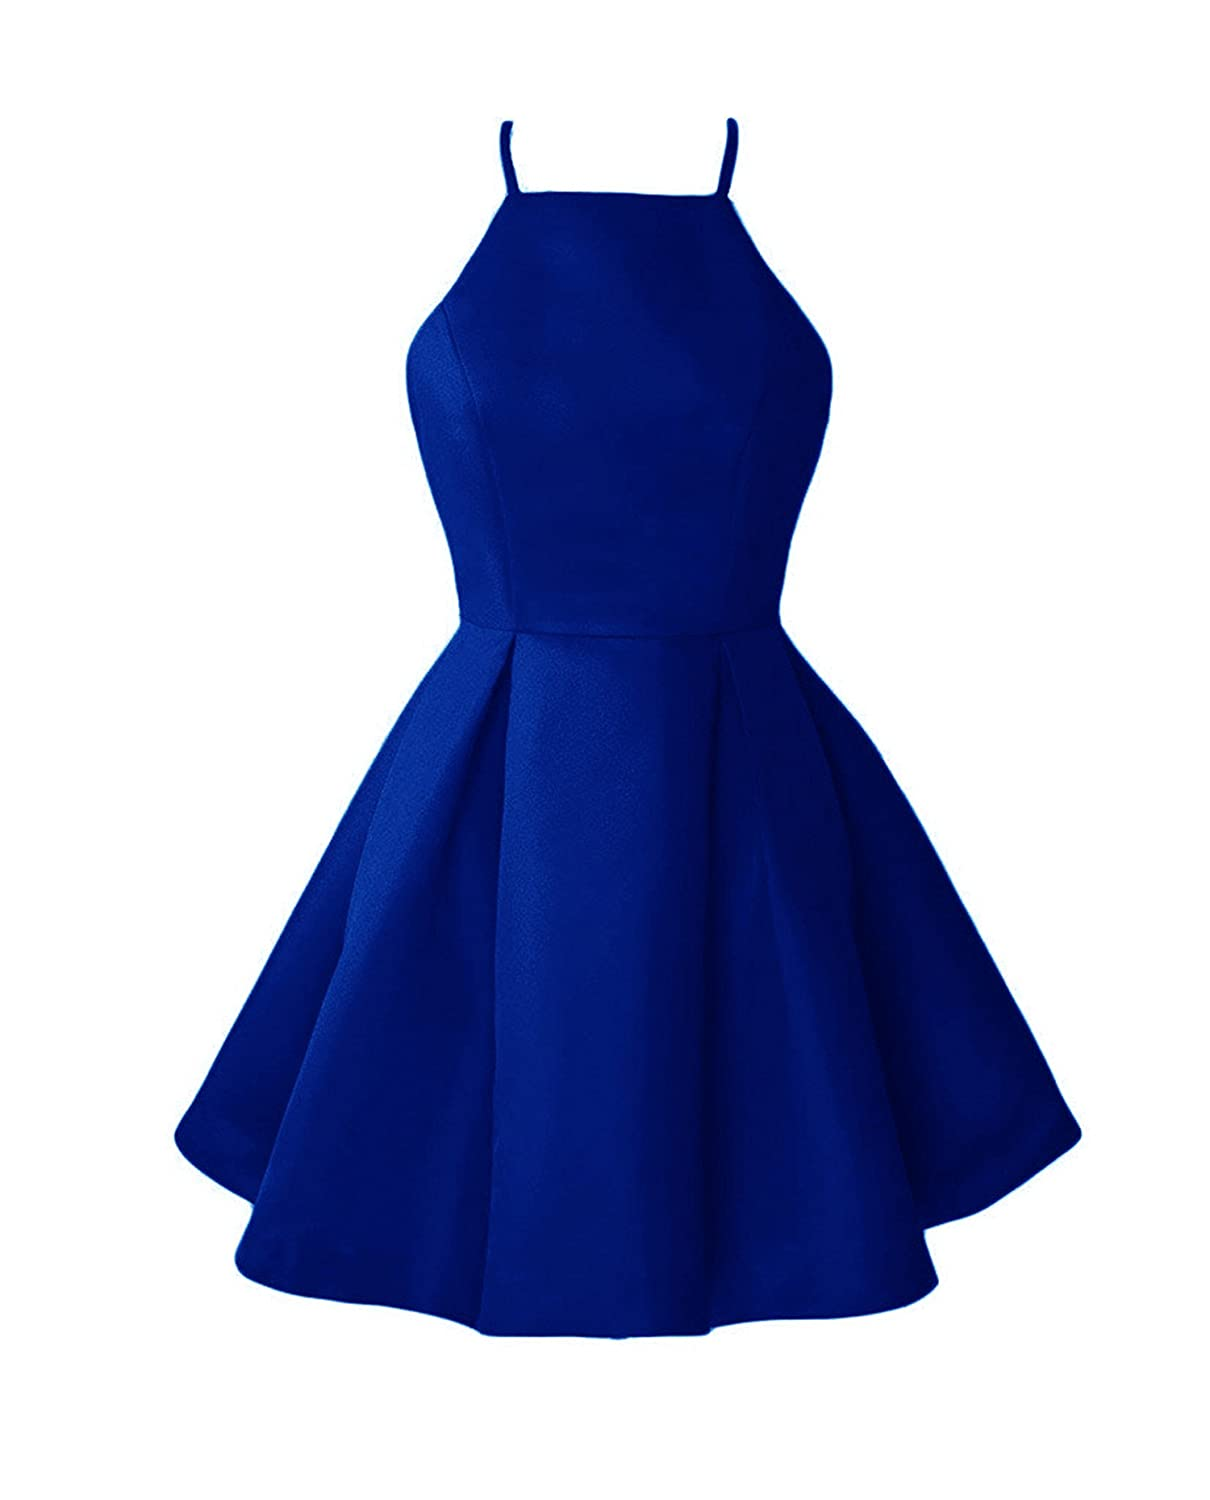 Broyal bluee WHZZ Womens ALine Homecoming Dresses Mini Short Cocktail Party Dresses